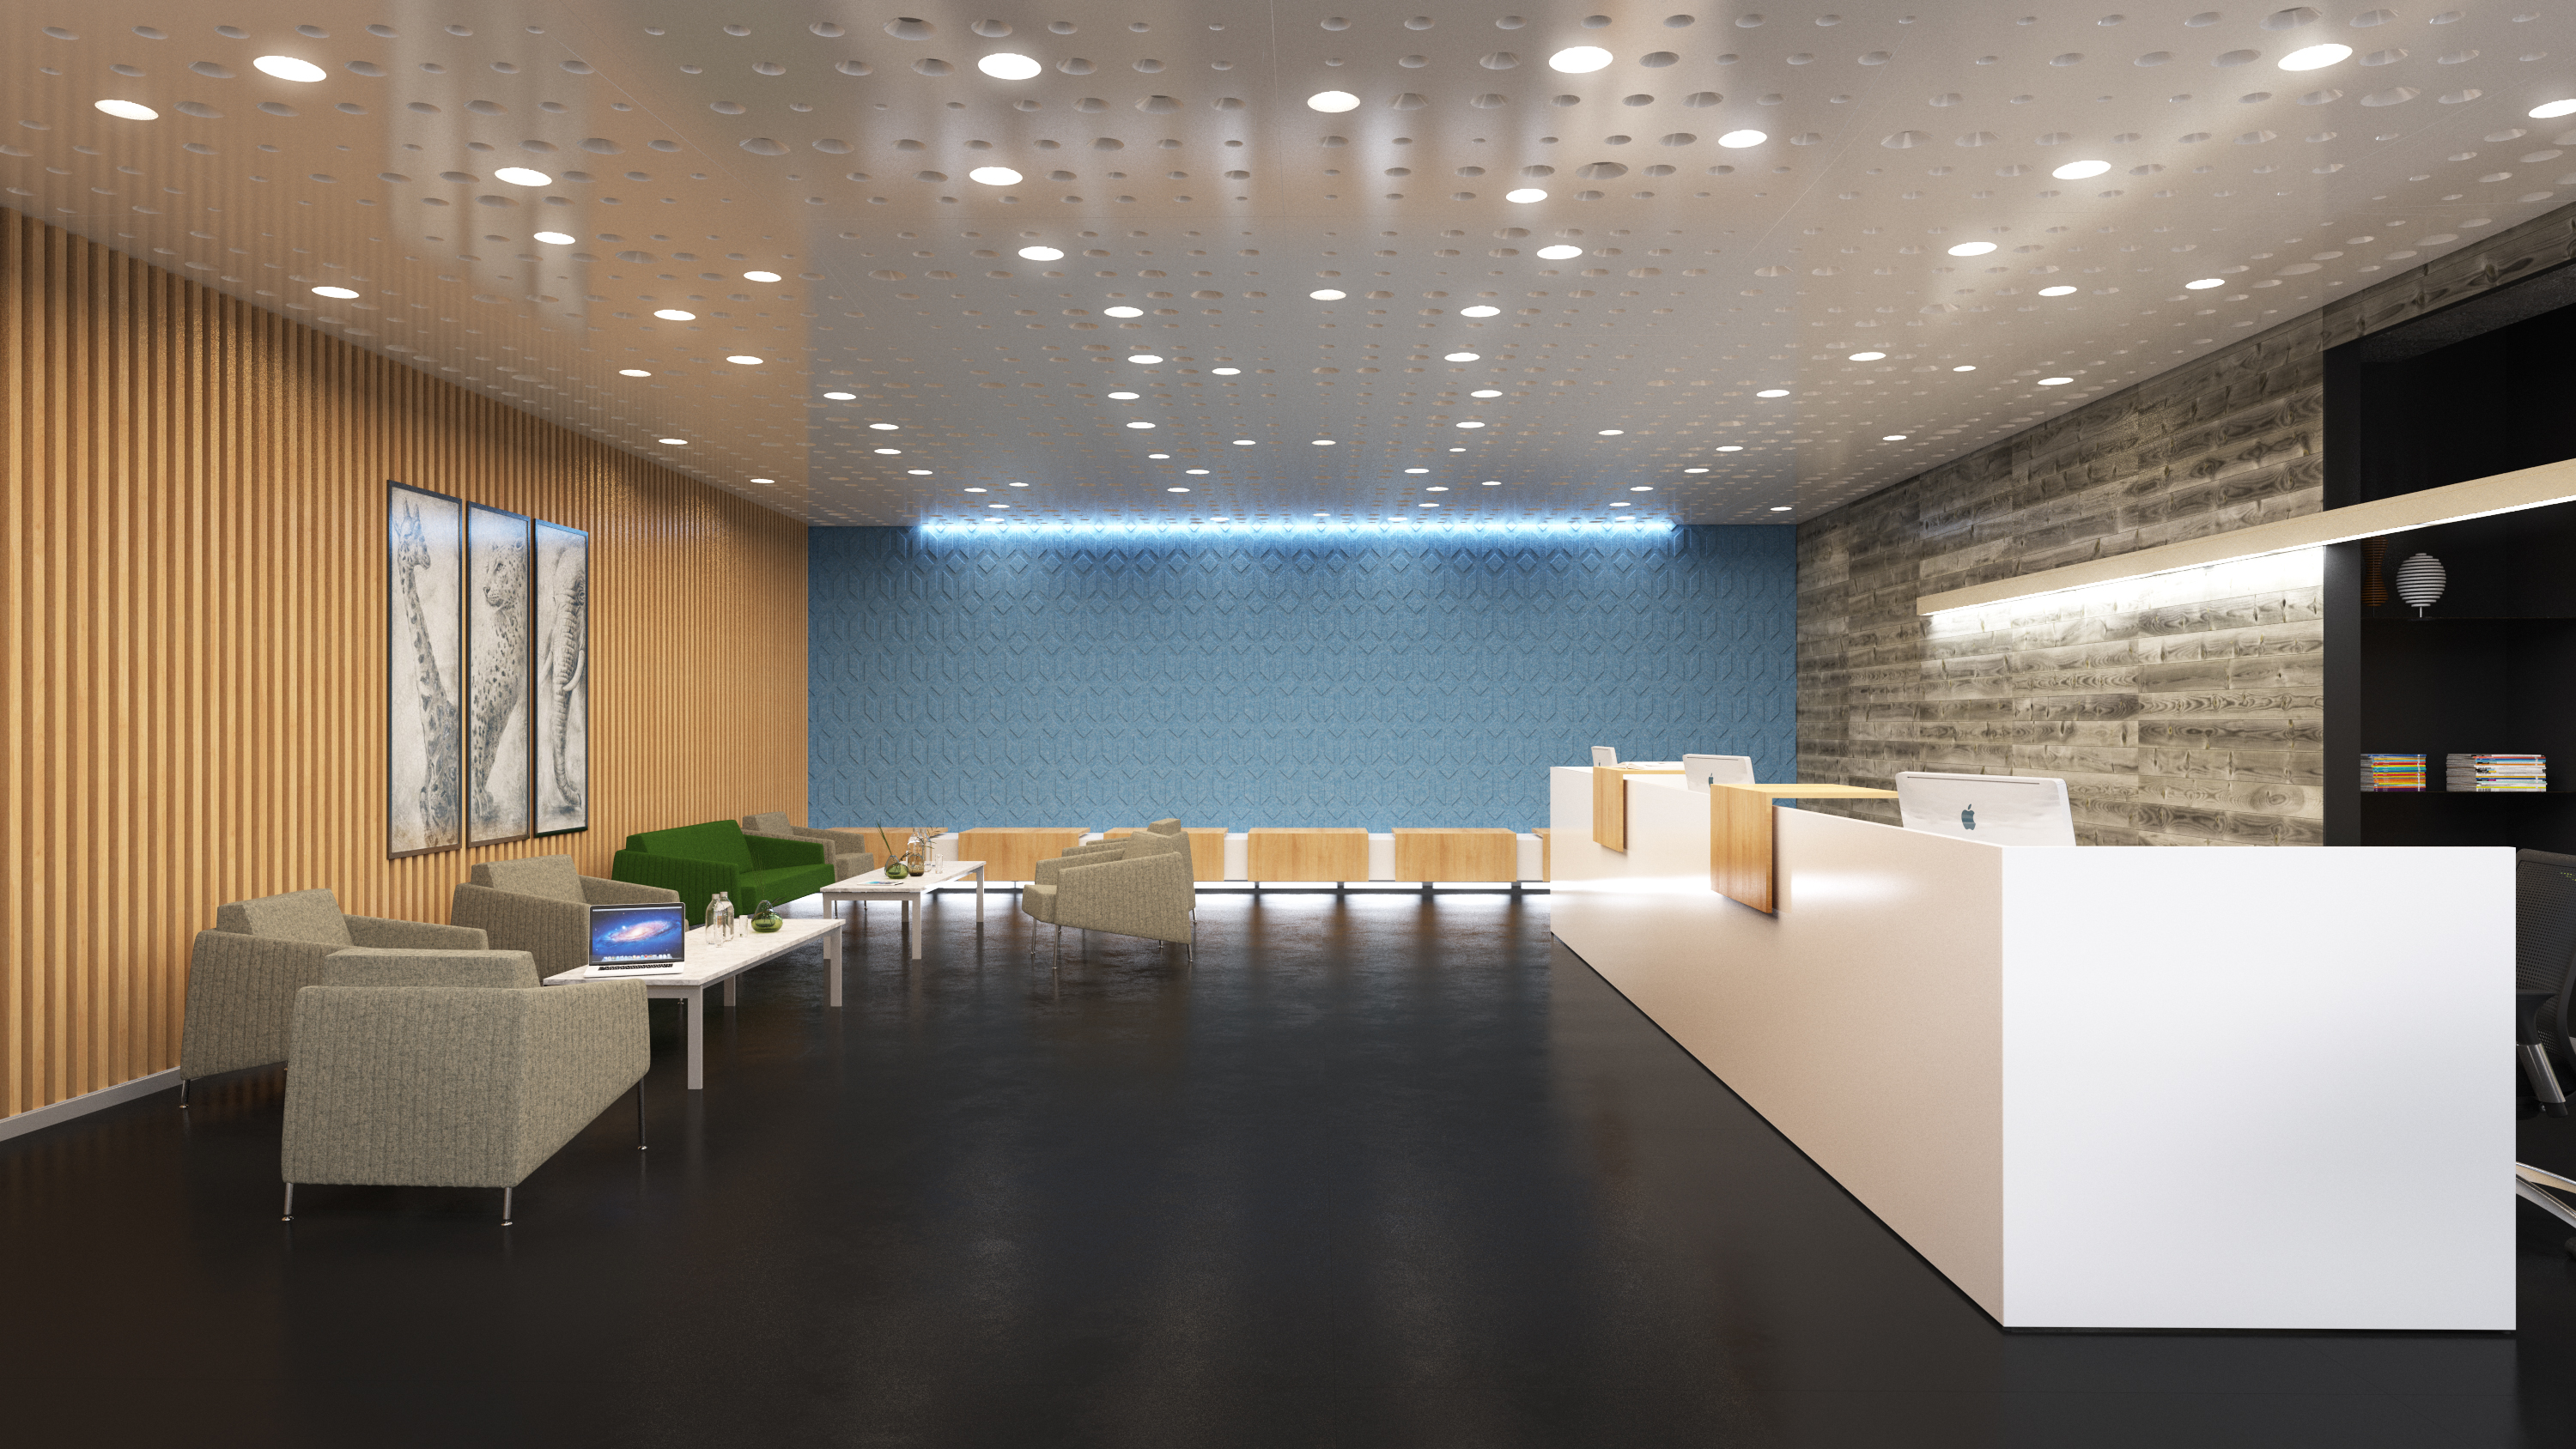 Modern Reception Area with a Long Reception Desk and a Large Waiting Area with Grey Lounge Seating and Meeting Tables